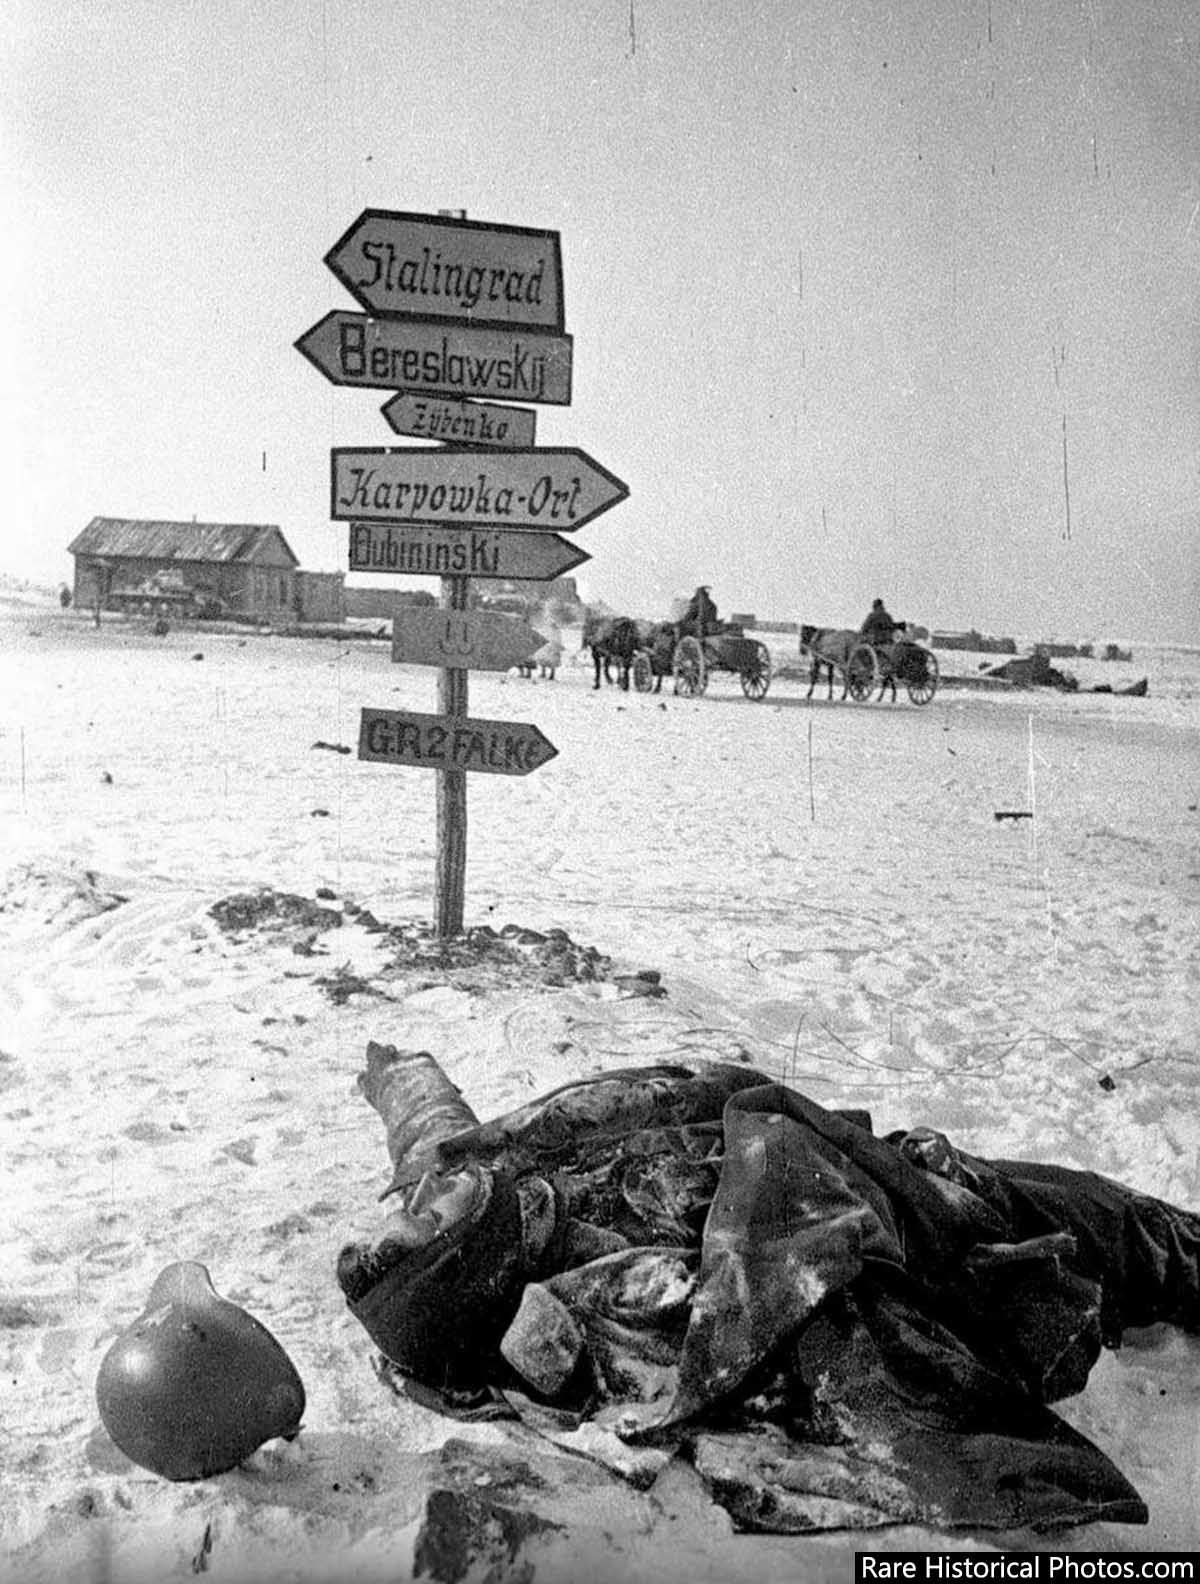 A city too far. Dead German soldier near Stalingrad. 1943.